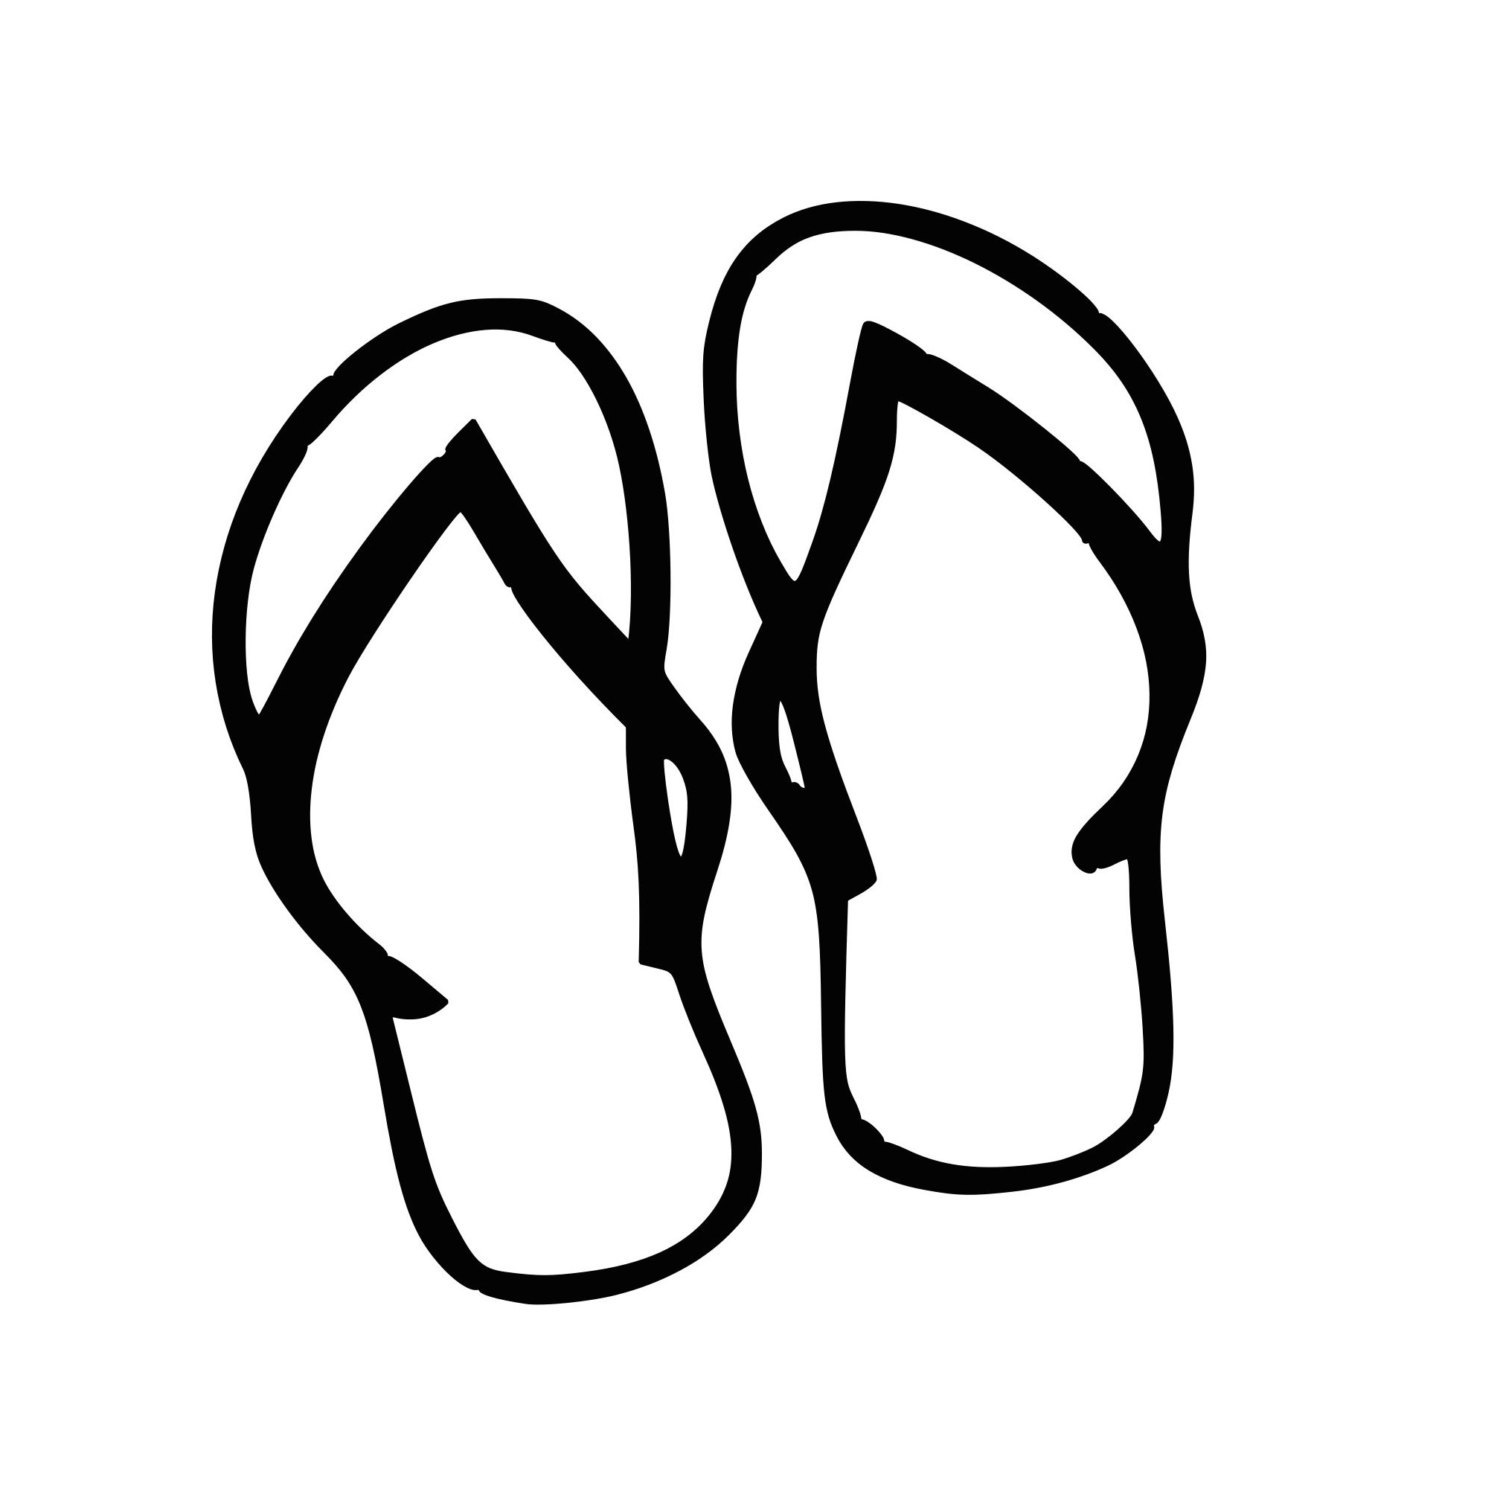 Tsinelas clipart picture freeuse download Tsinelas clipart black and white 1 » Clipart Portal picture freeuse download